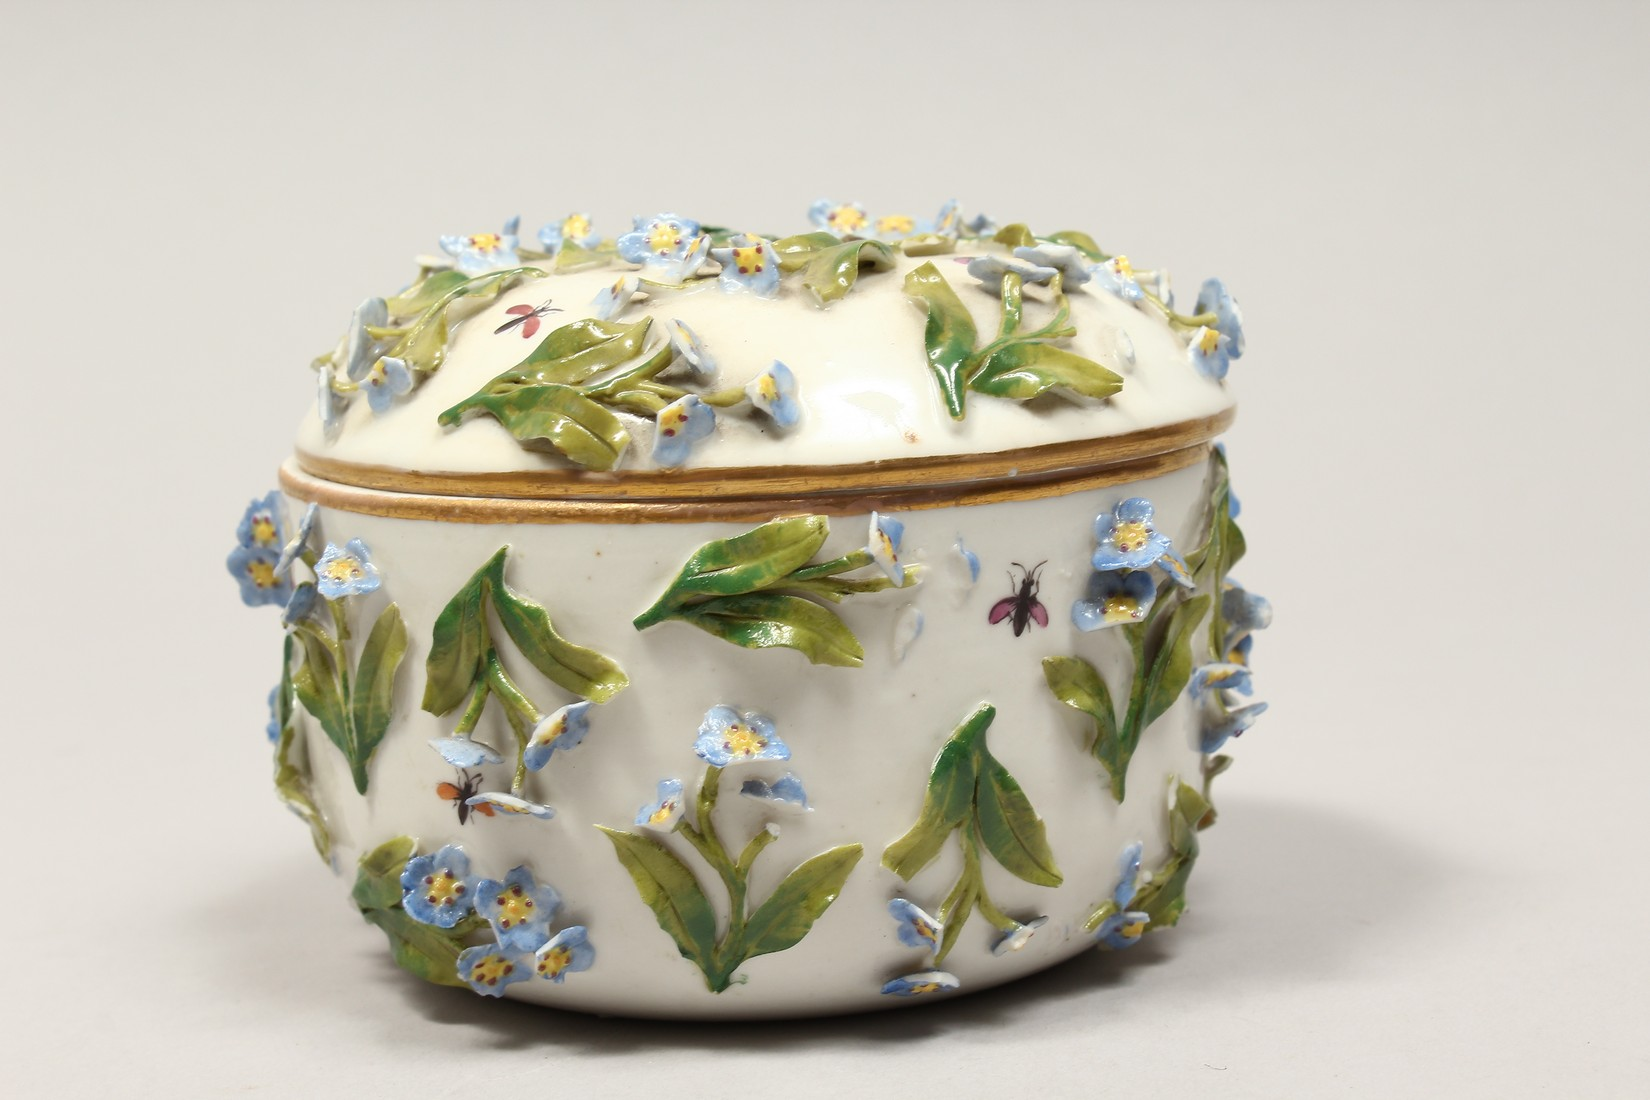 A DRESDON CIRCULAR BOWL AND COVER painted with moths and encrusted with flowers. 4.5ins diameter. - Image 3 of 8